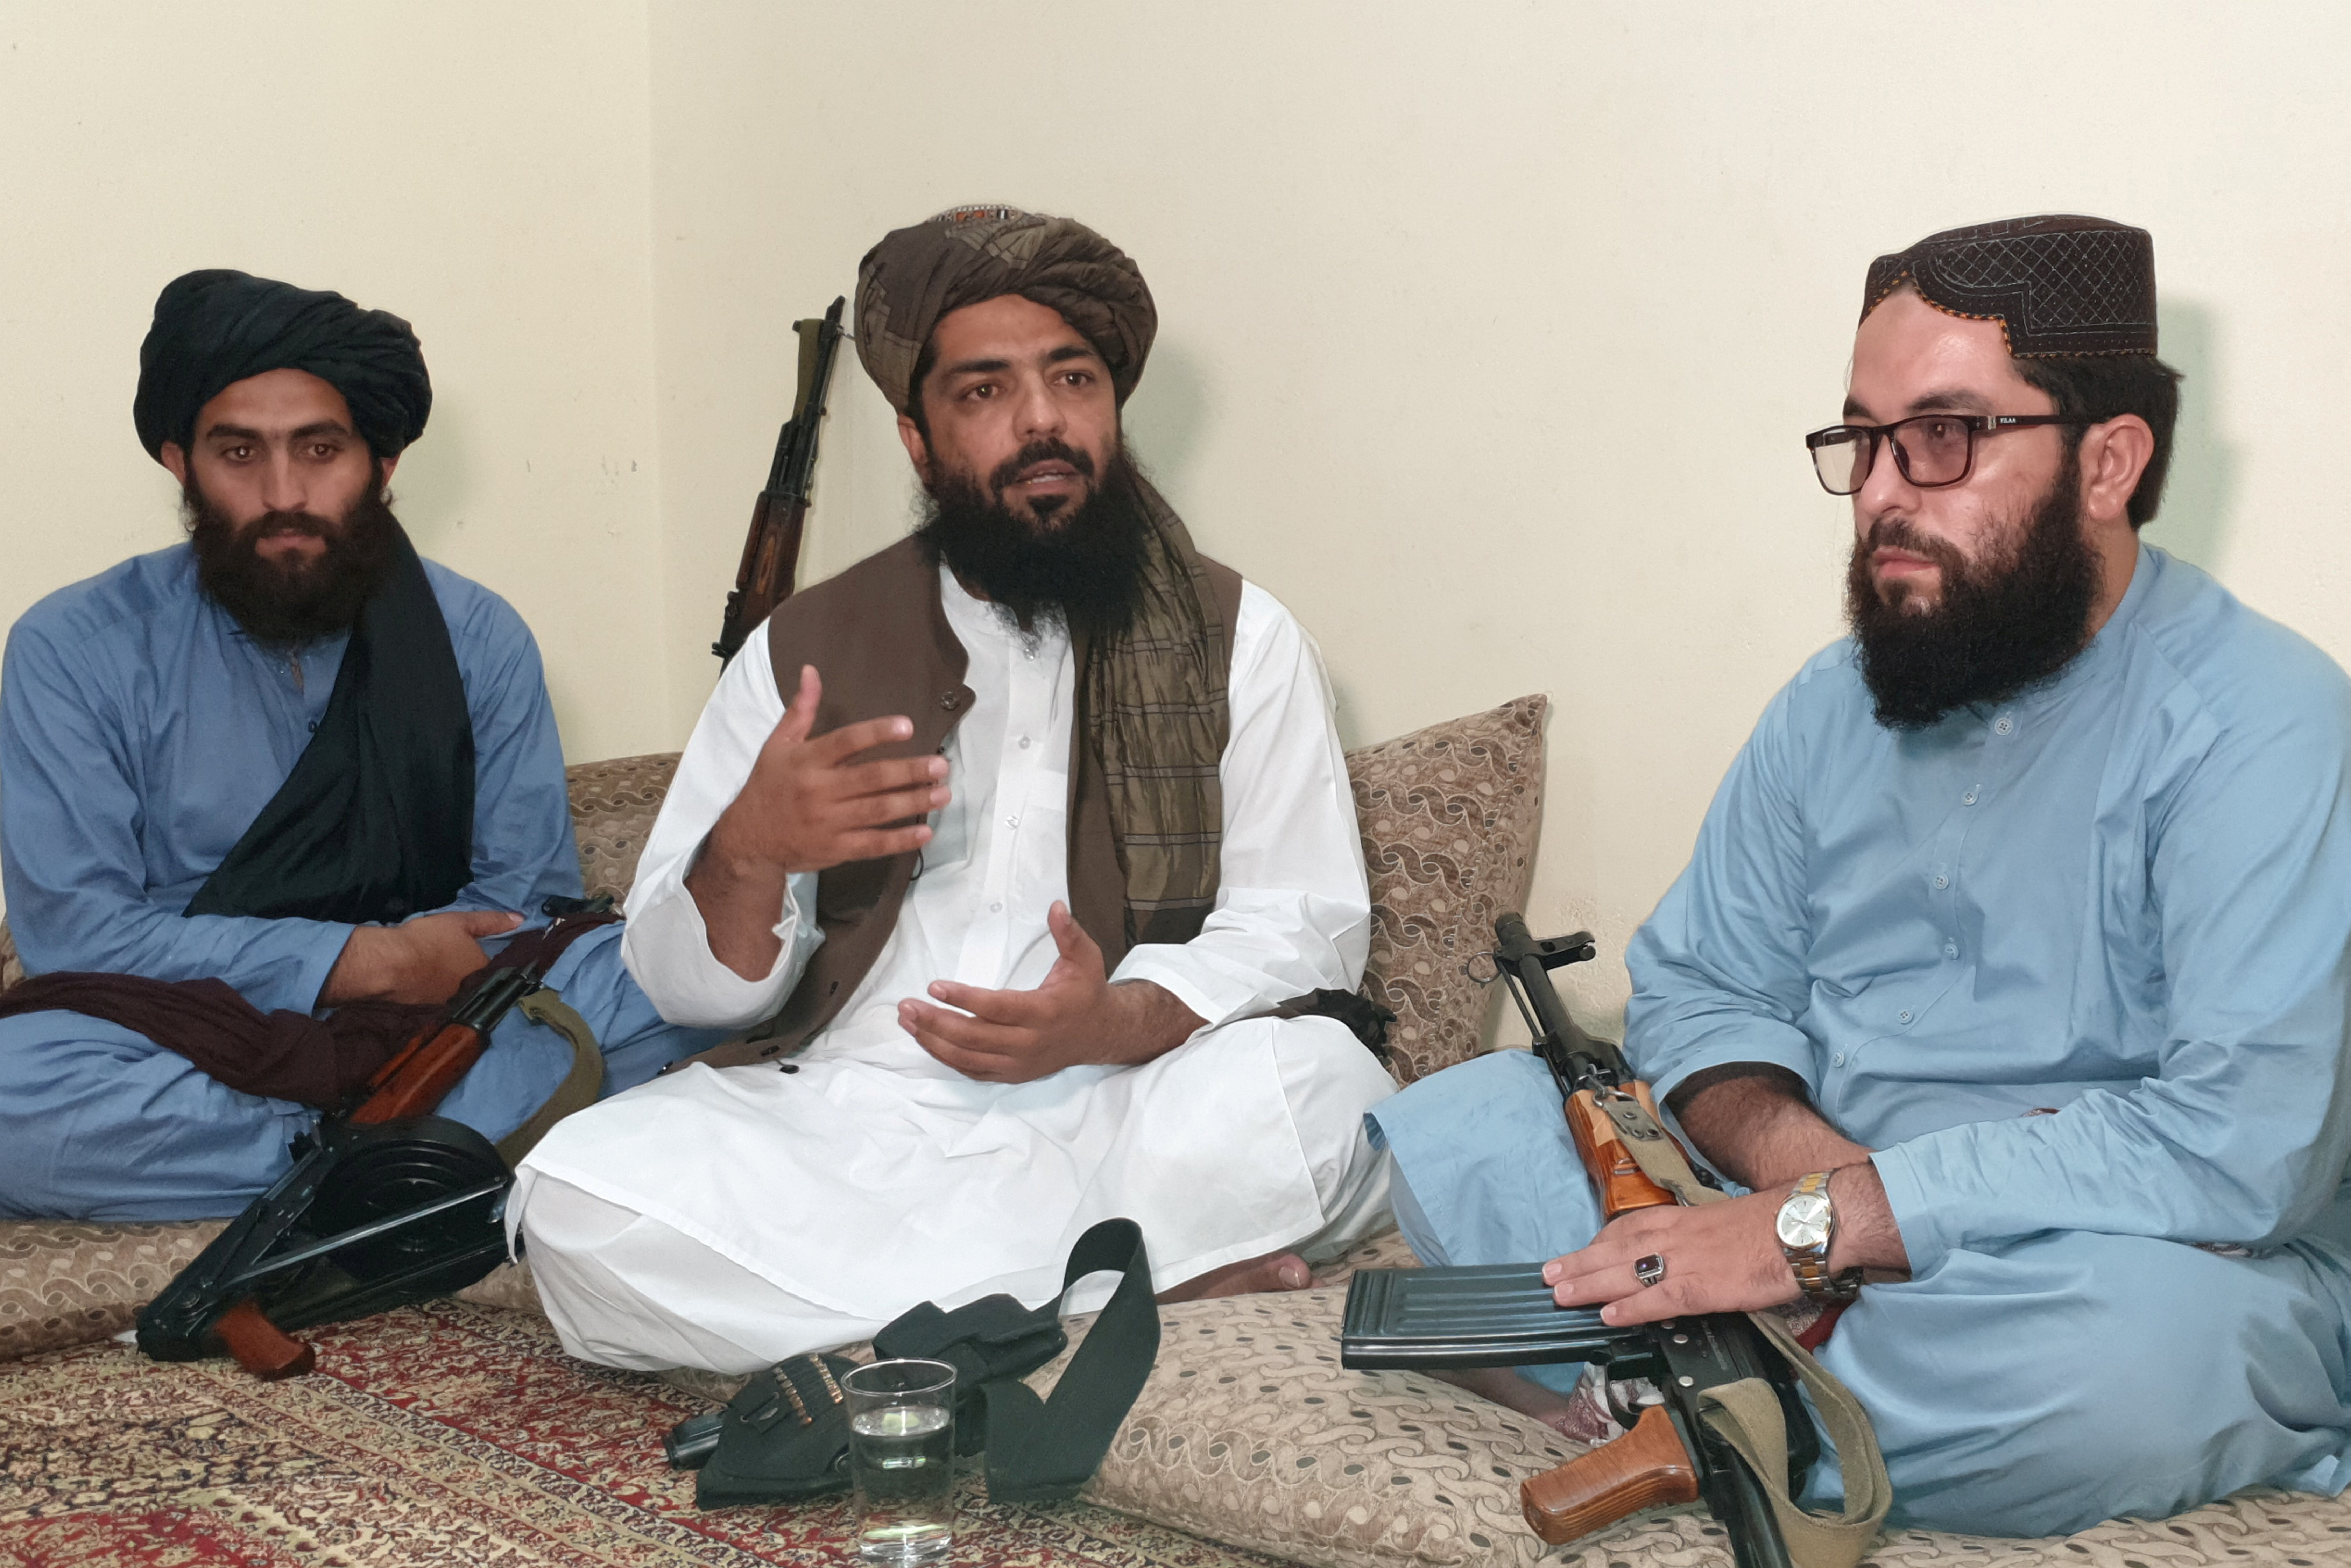 Waheedullah Hashimi (C), a senior Taliban commander, gestures as he speaks with Reuters during an interview at an undisclosed location near Afghanistan-Pakistan border August 17, 2021. Picture taken August 17, 2021. REUTERS/Stringer